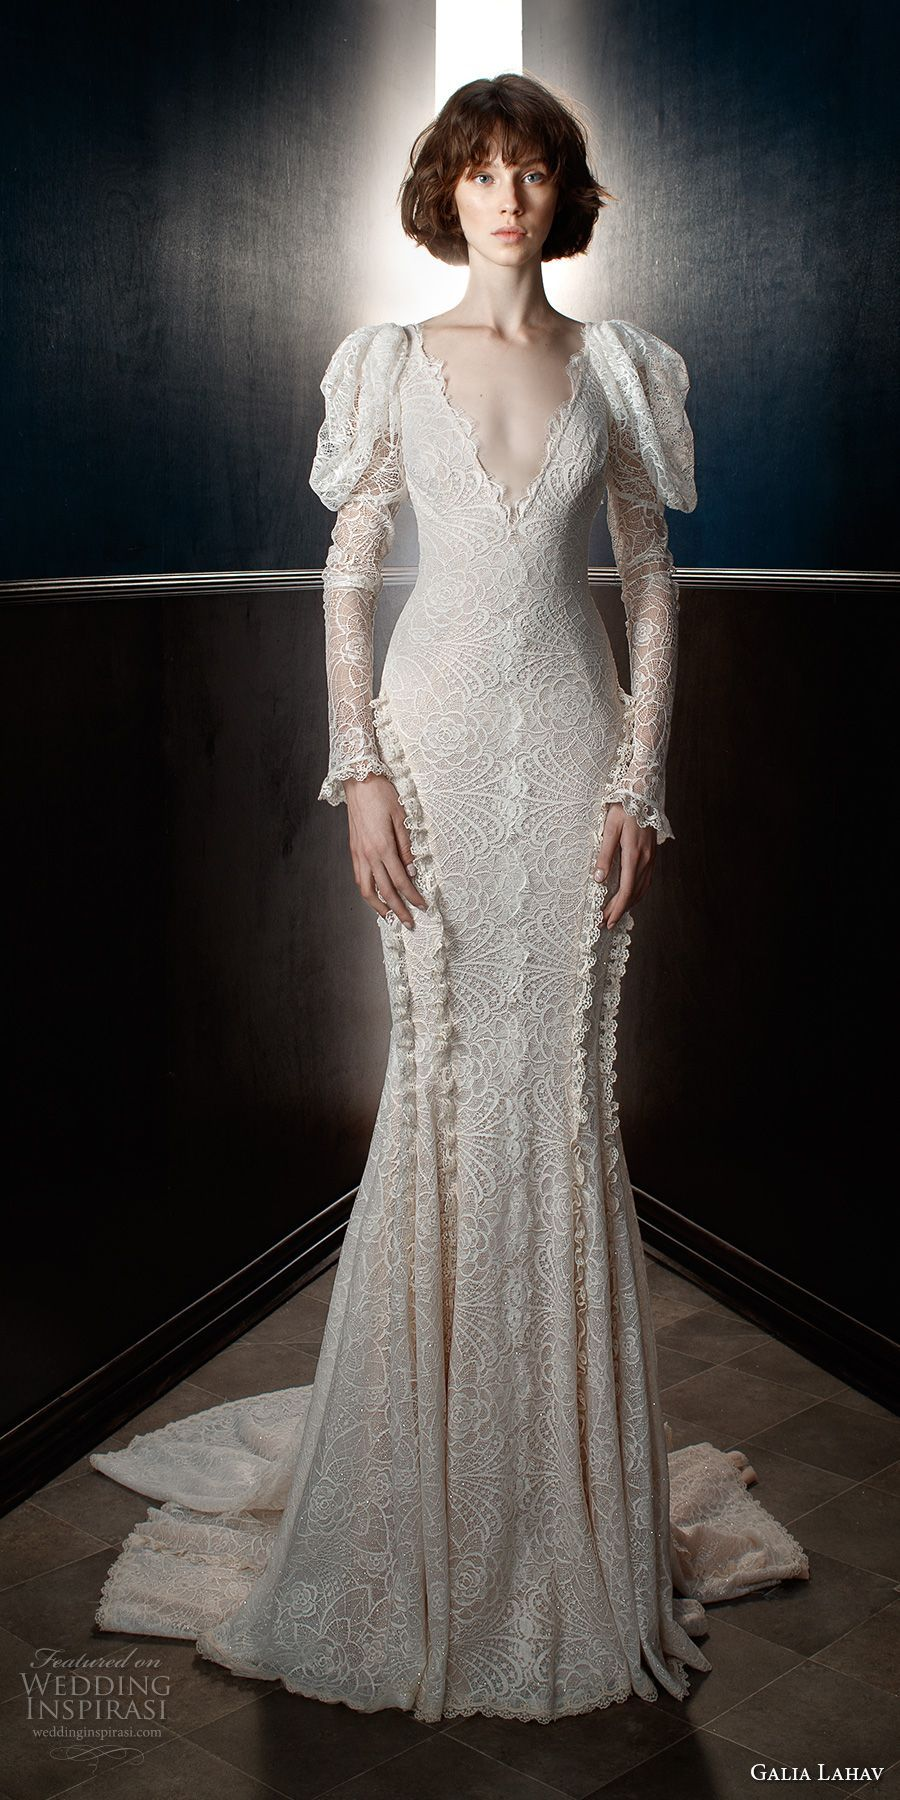 Galia lahav spring bridal leg of mutton long sleeves v neck